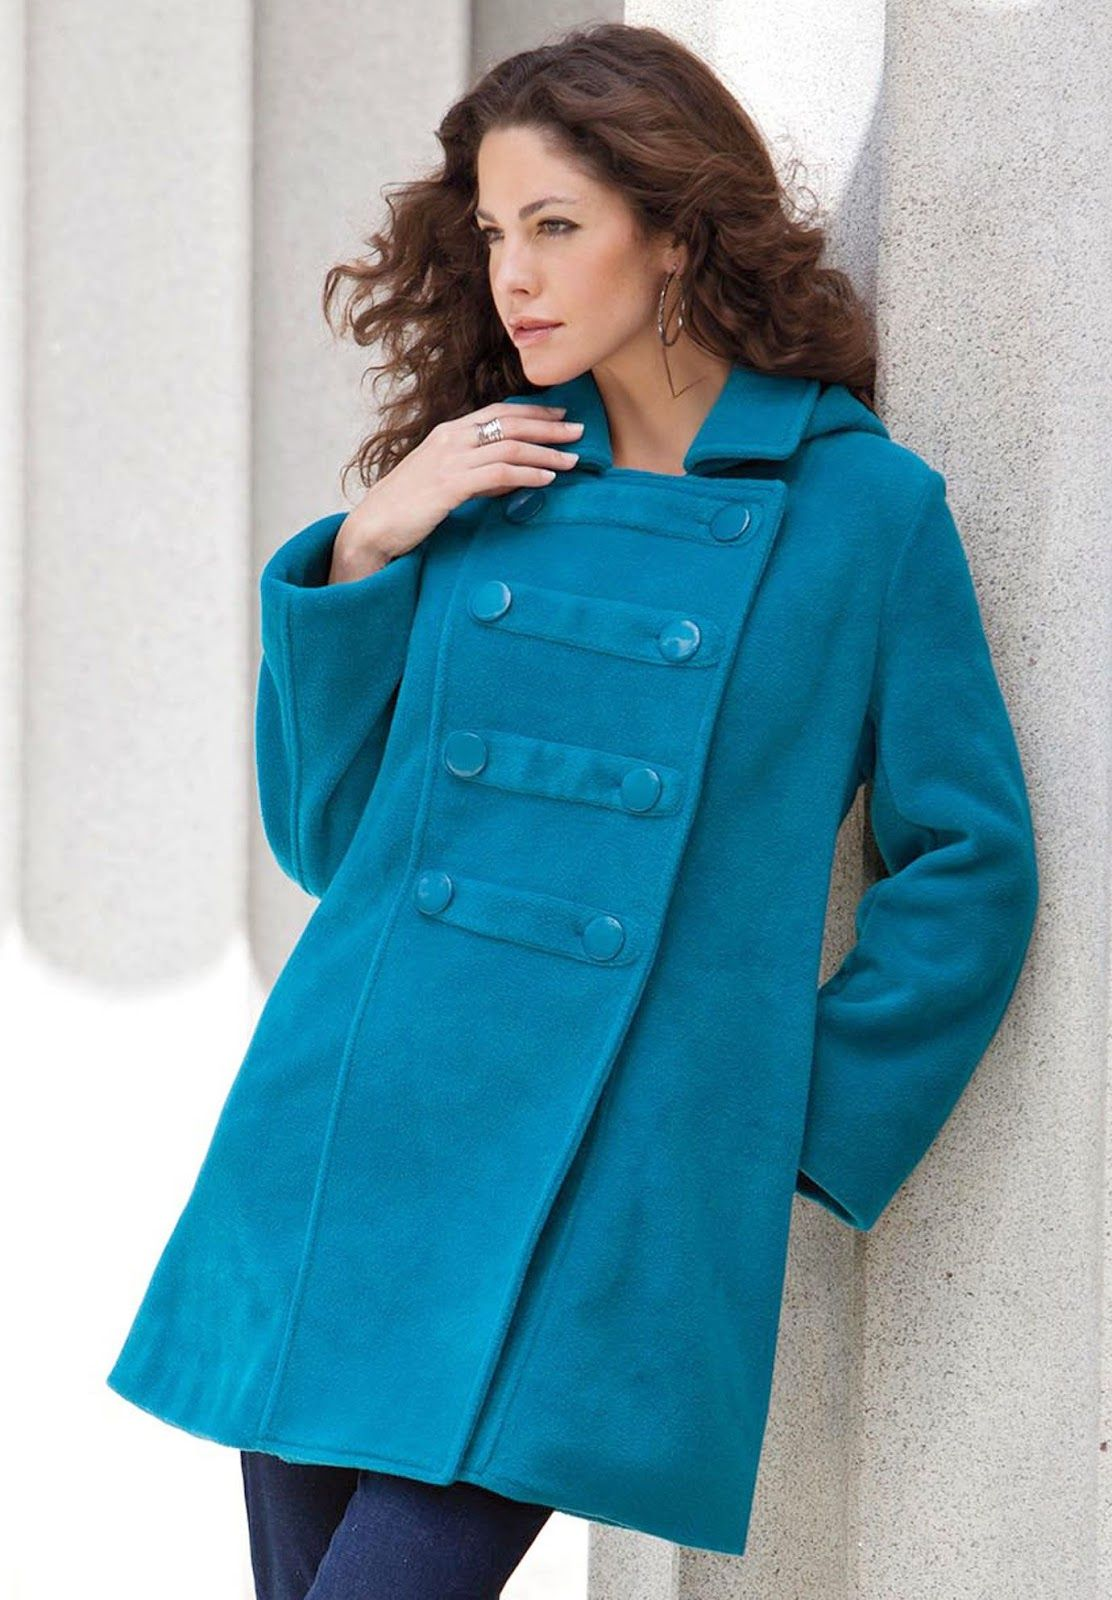 The Best Plus Size Spring Coats Stylish Plus Size Clothing Coats For Women Plus Size Outfits [ 1600 x 1112 Pixel ]